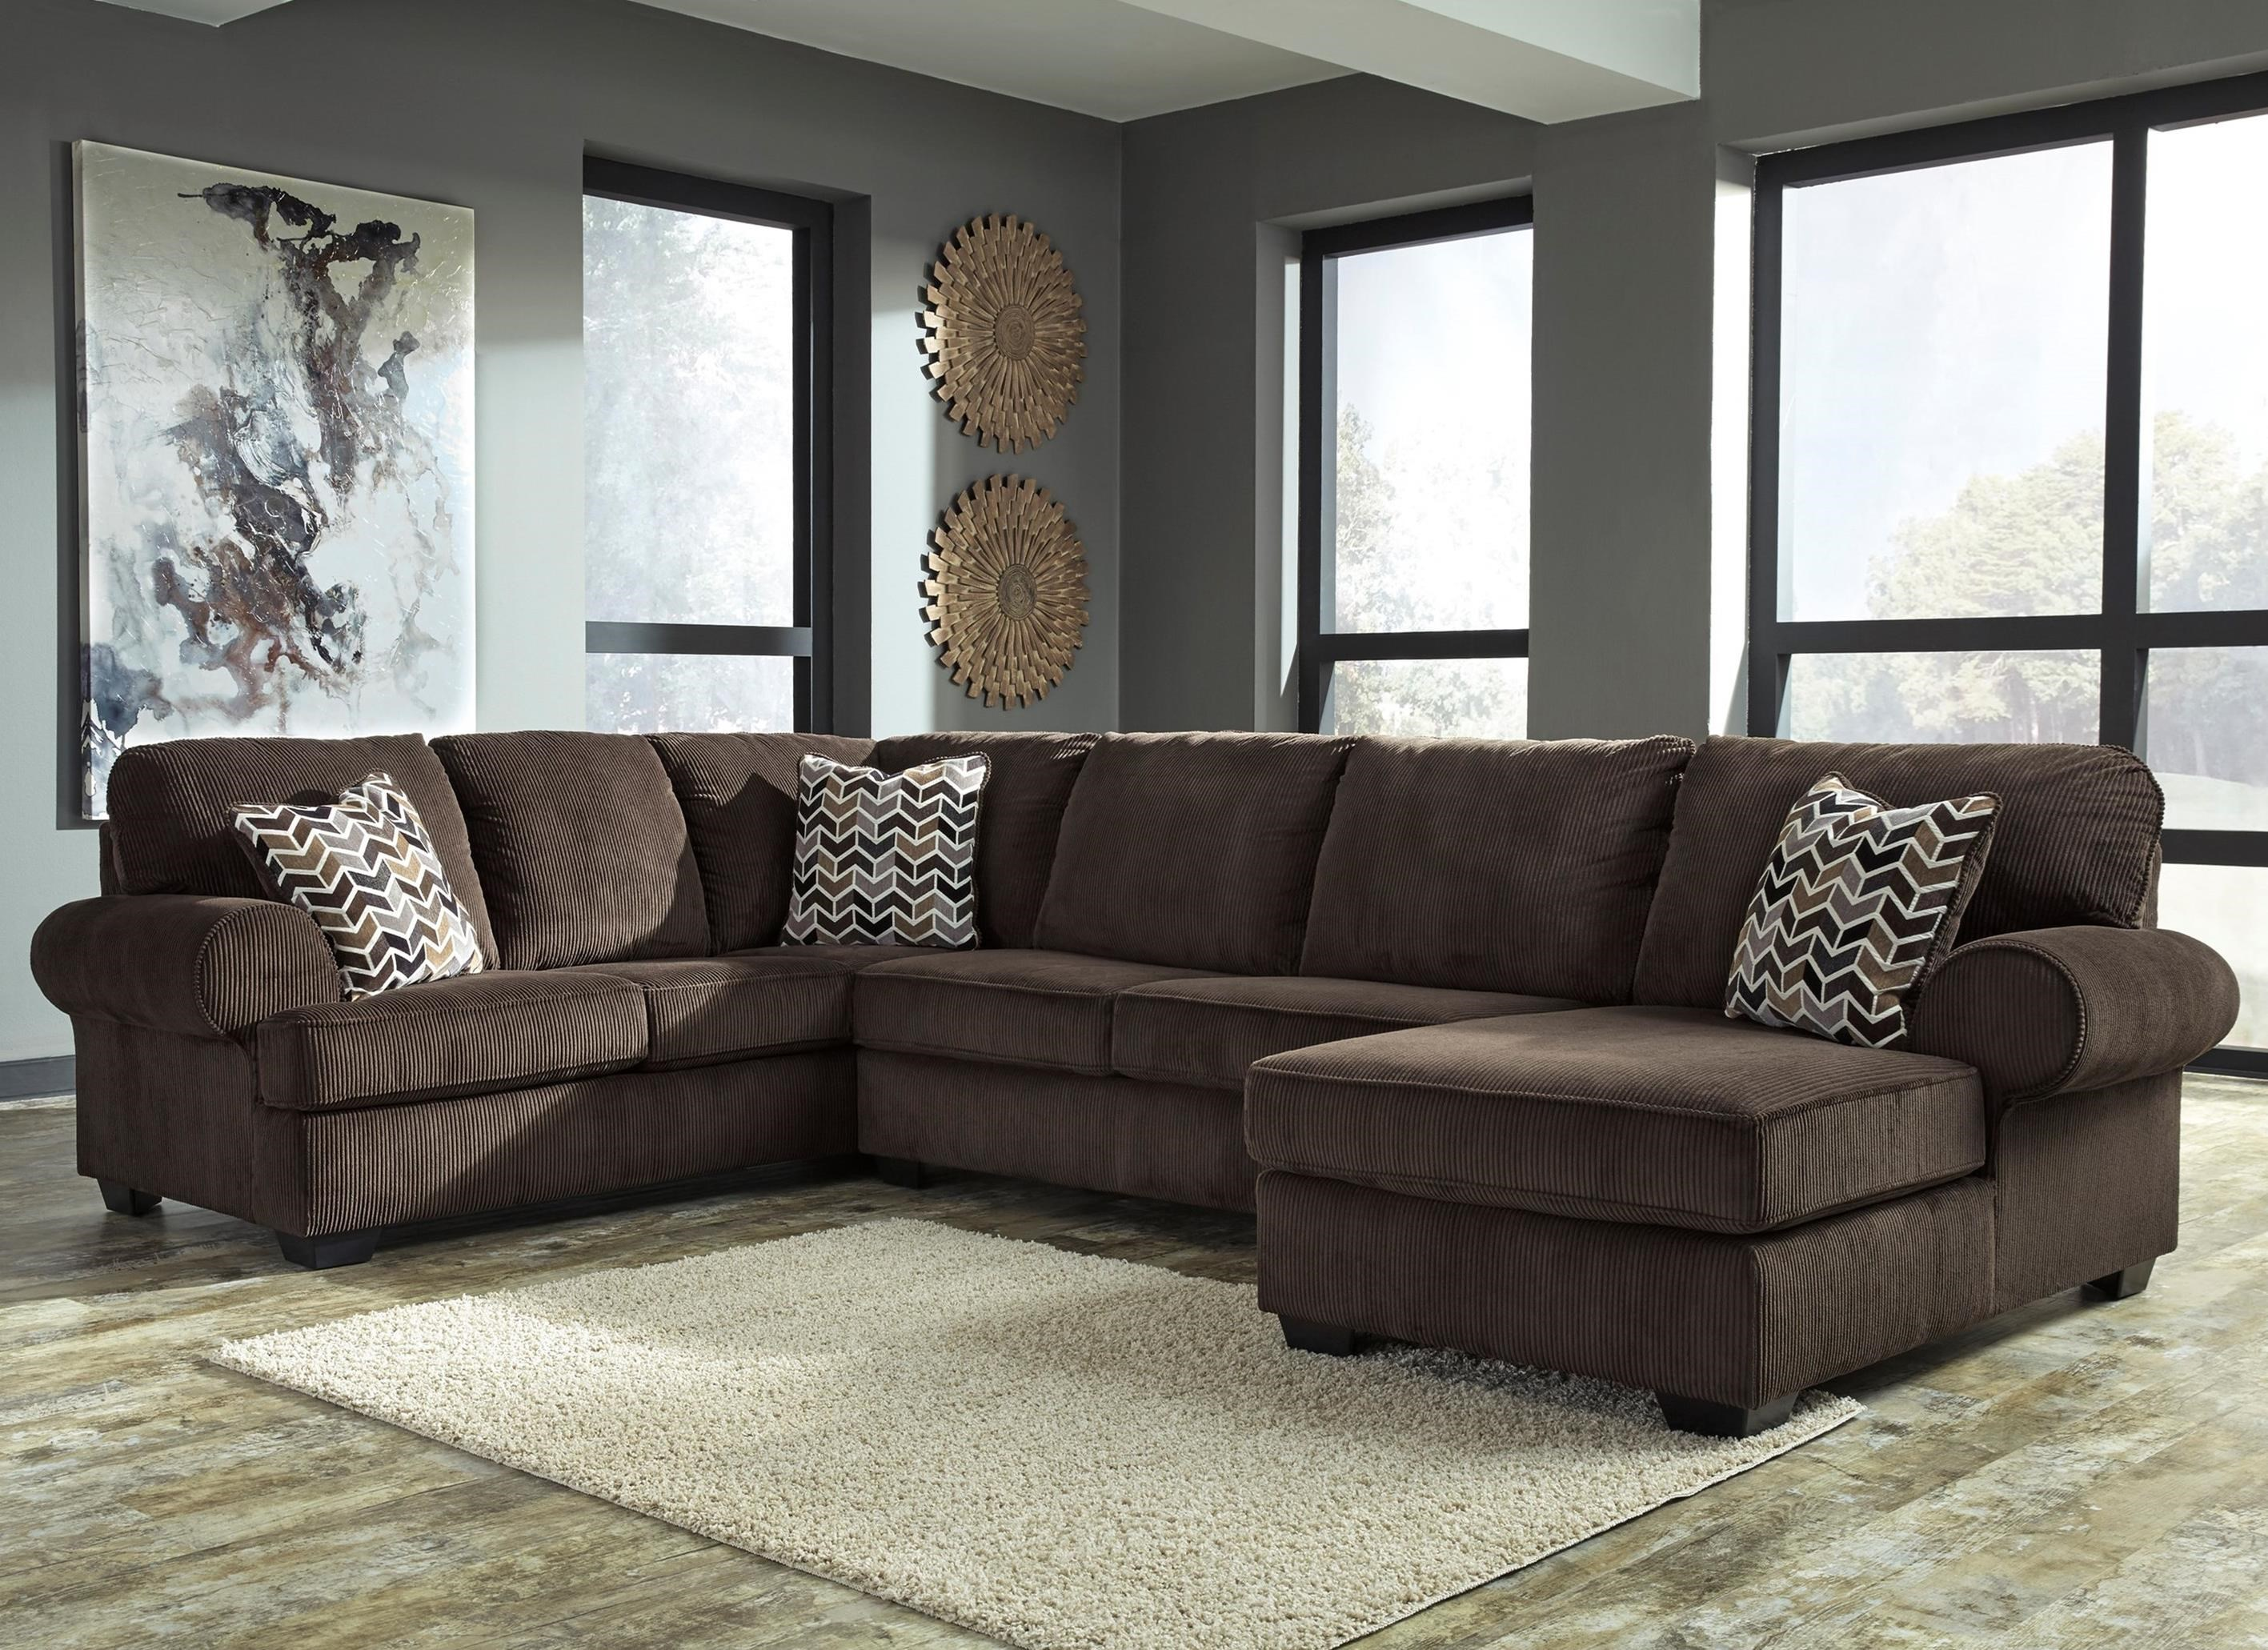 Signature Design By Ashley Jinllingsly3 Piece Sectional With Chaise ...